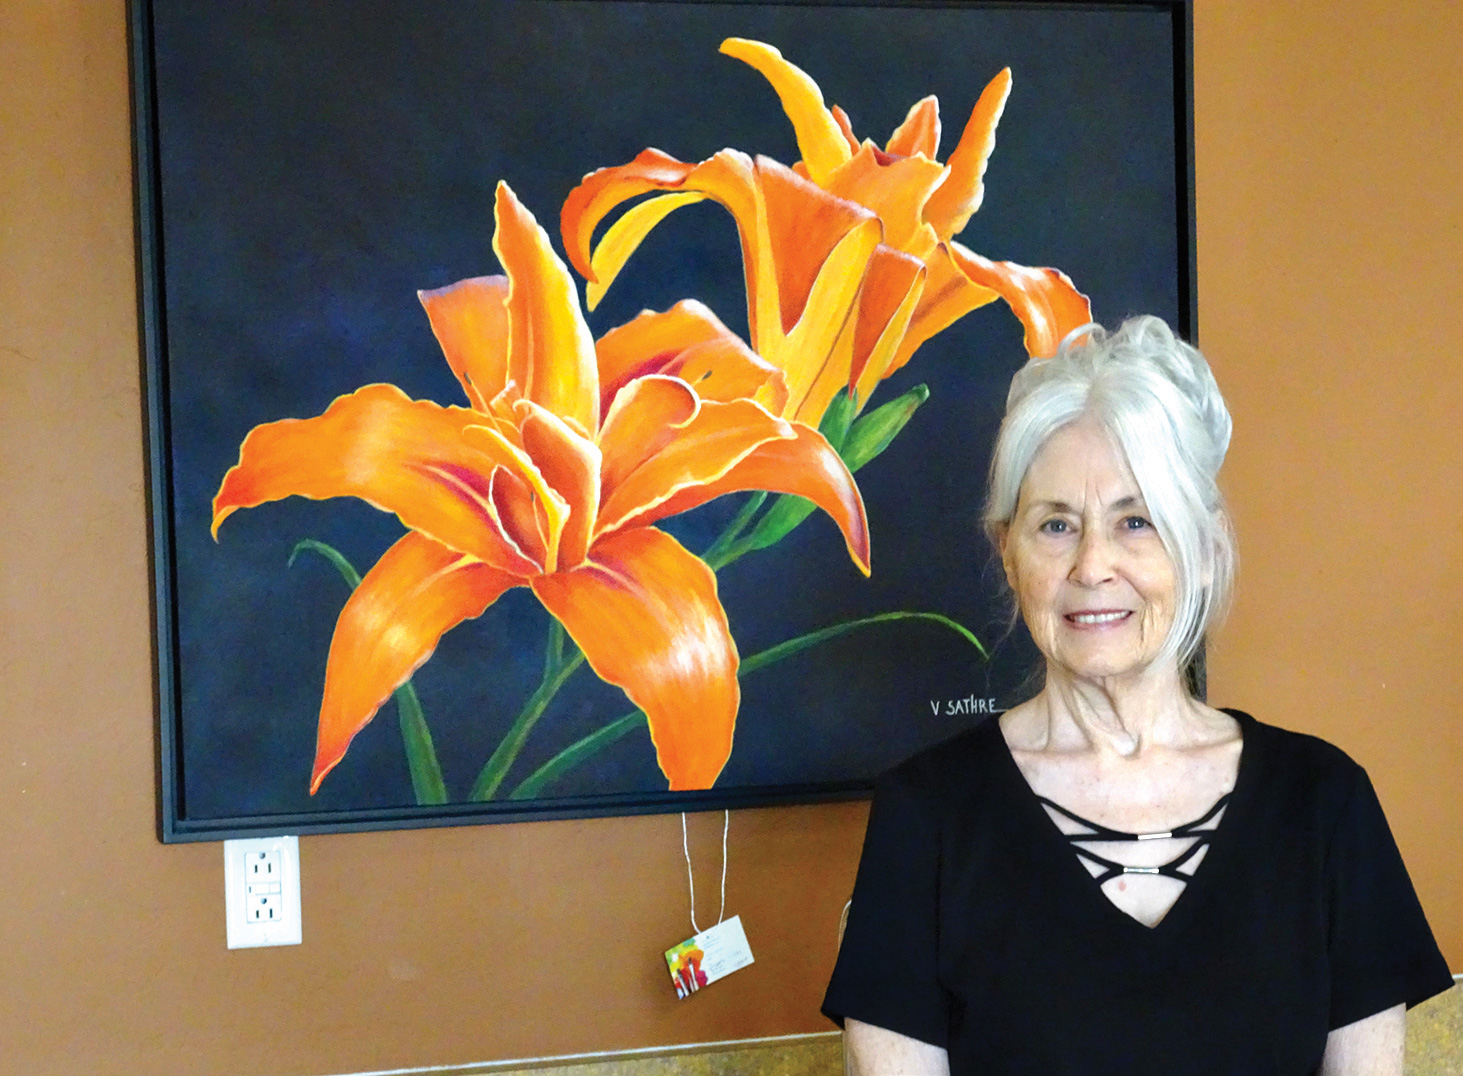 """Vivian Sathre shows off """"Double Lilies,"""" one of her large floral paintings done in an acrylic medium. (Photo by LaVerne Kyriss)"""